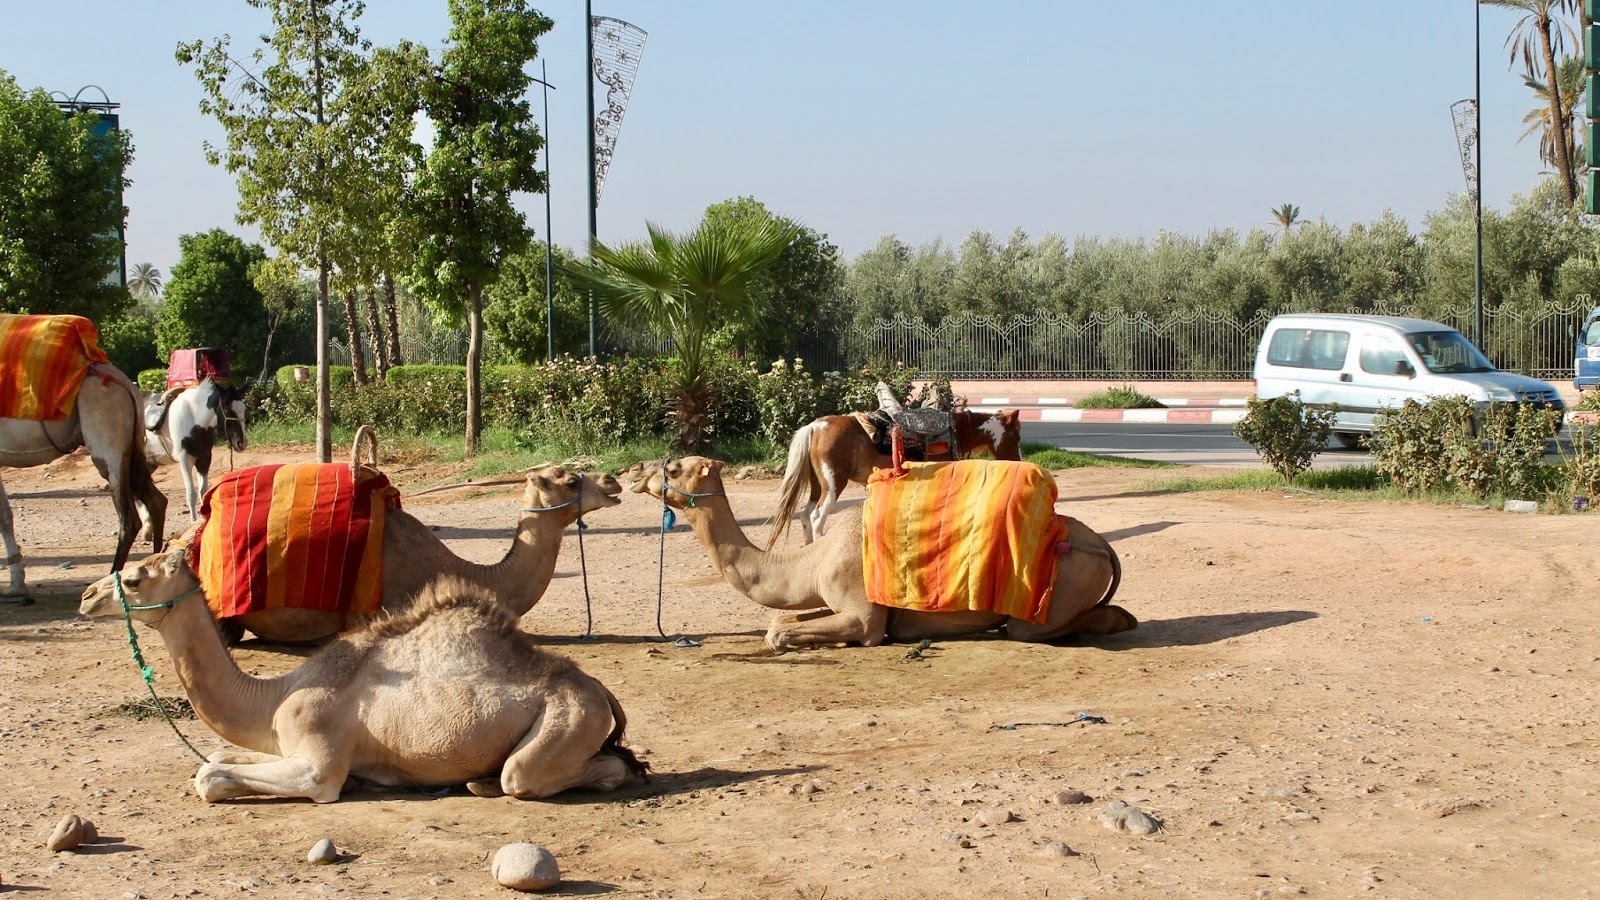 Camels Chilling On The Streets Of Marrakech